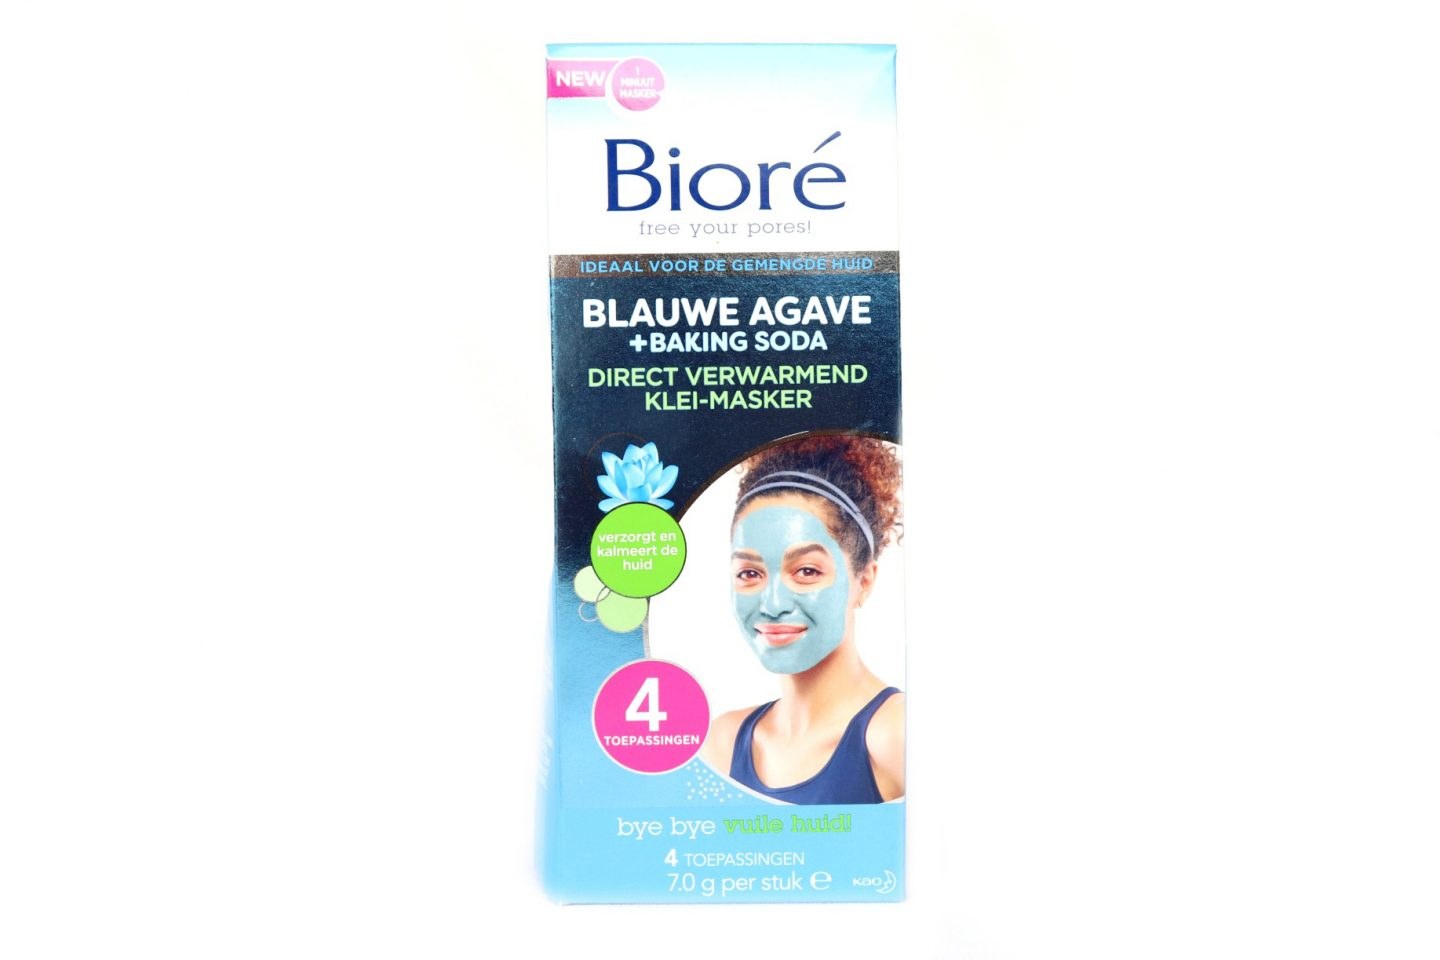 Bioré Blue Agave + Baking Soda Line Review